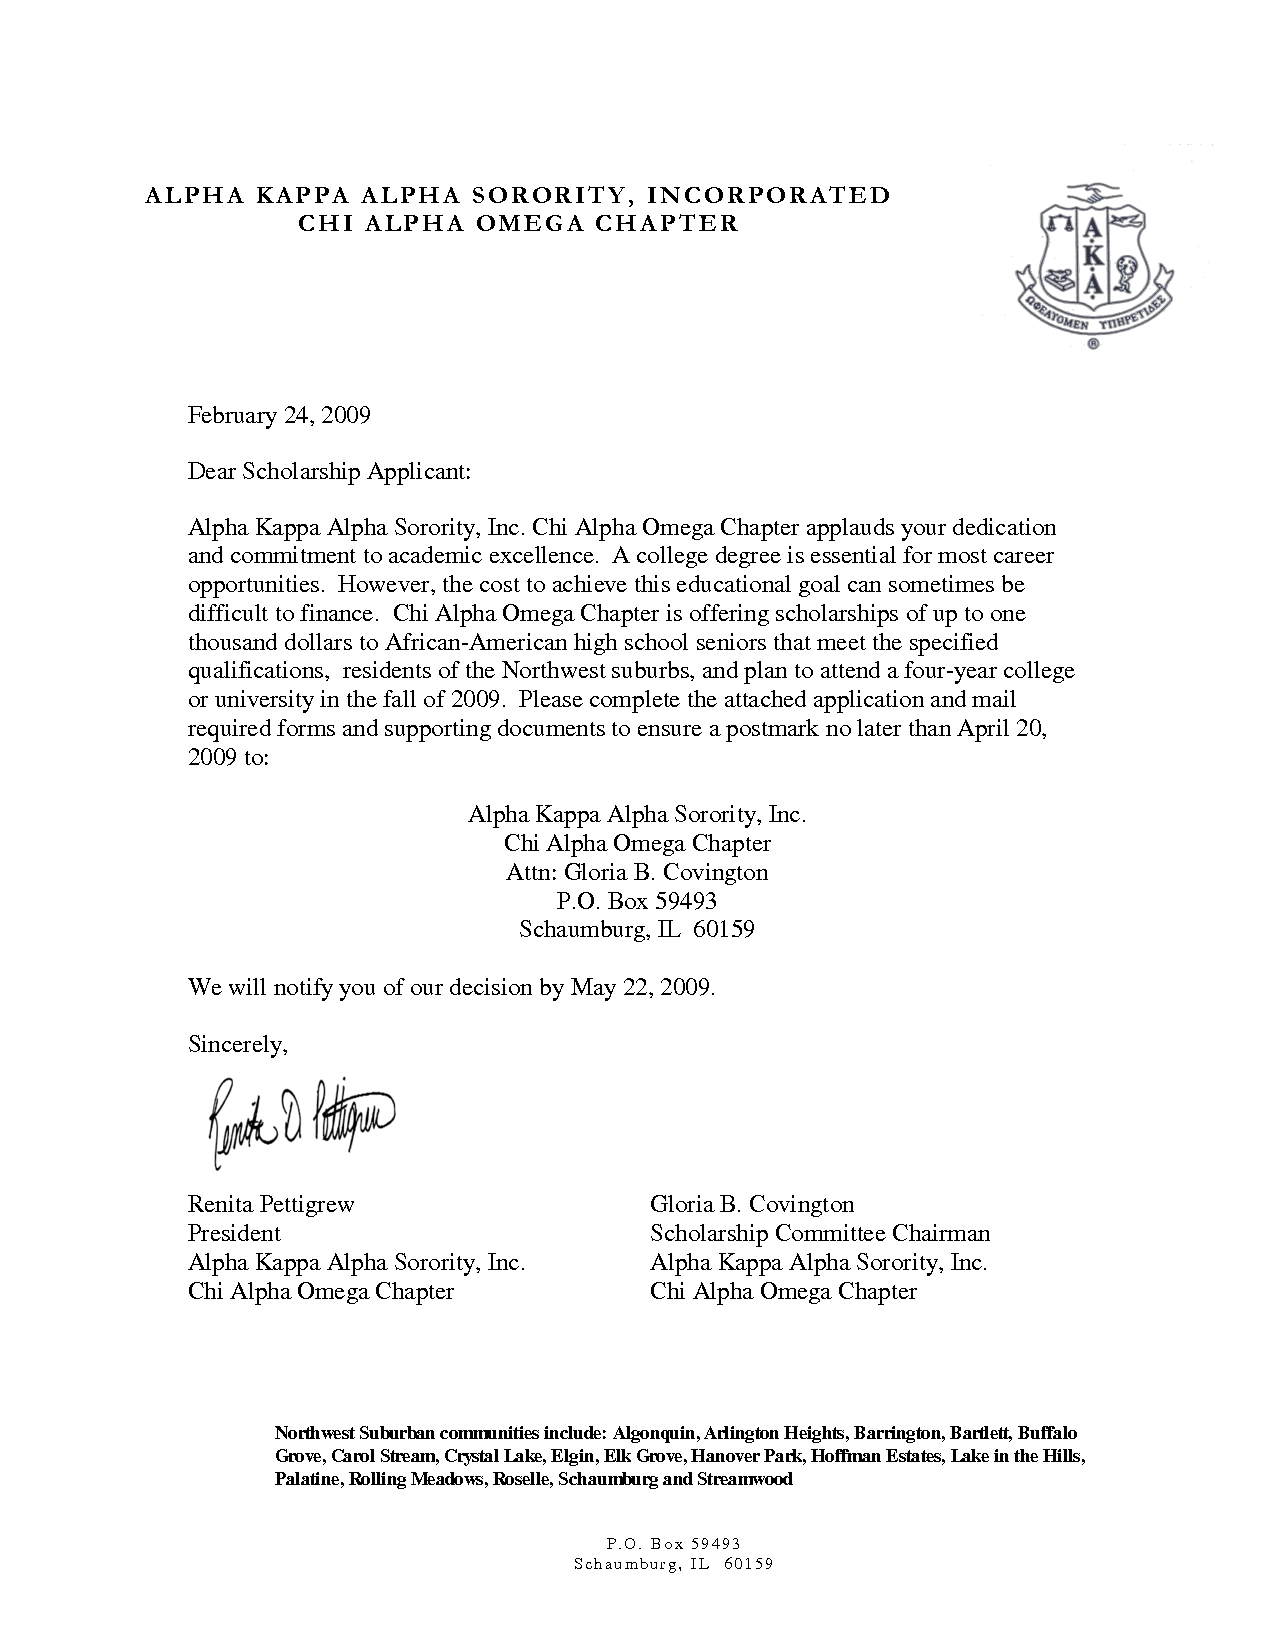 sample letter of recommendation for aka sorority letter here is a sample letter of sorority recommendation 24629 | 5be302956a2eb109b07007464ba072ca